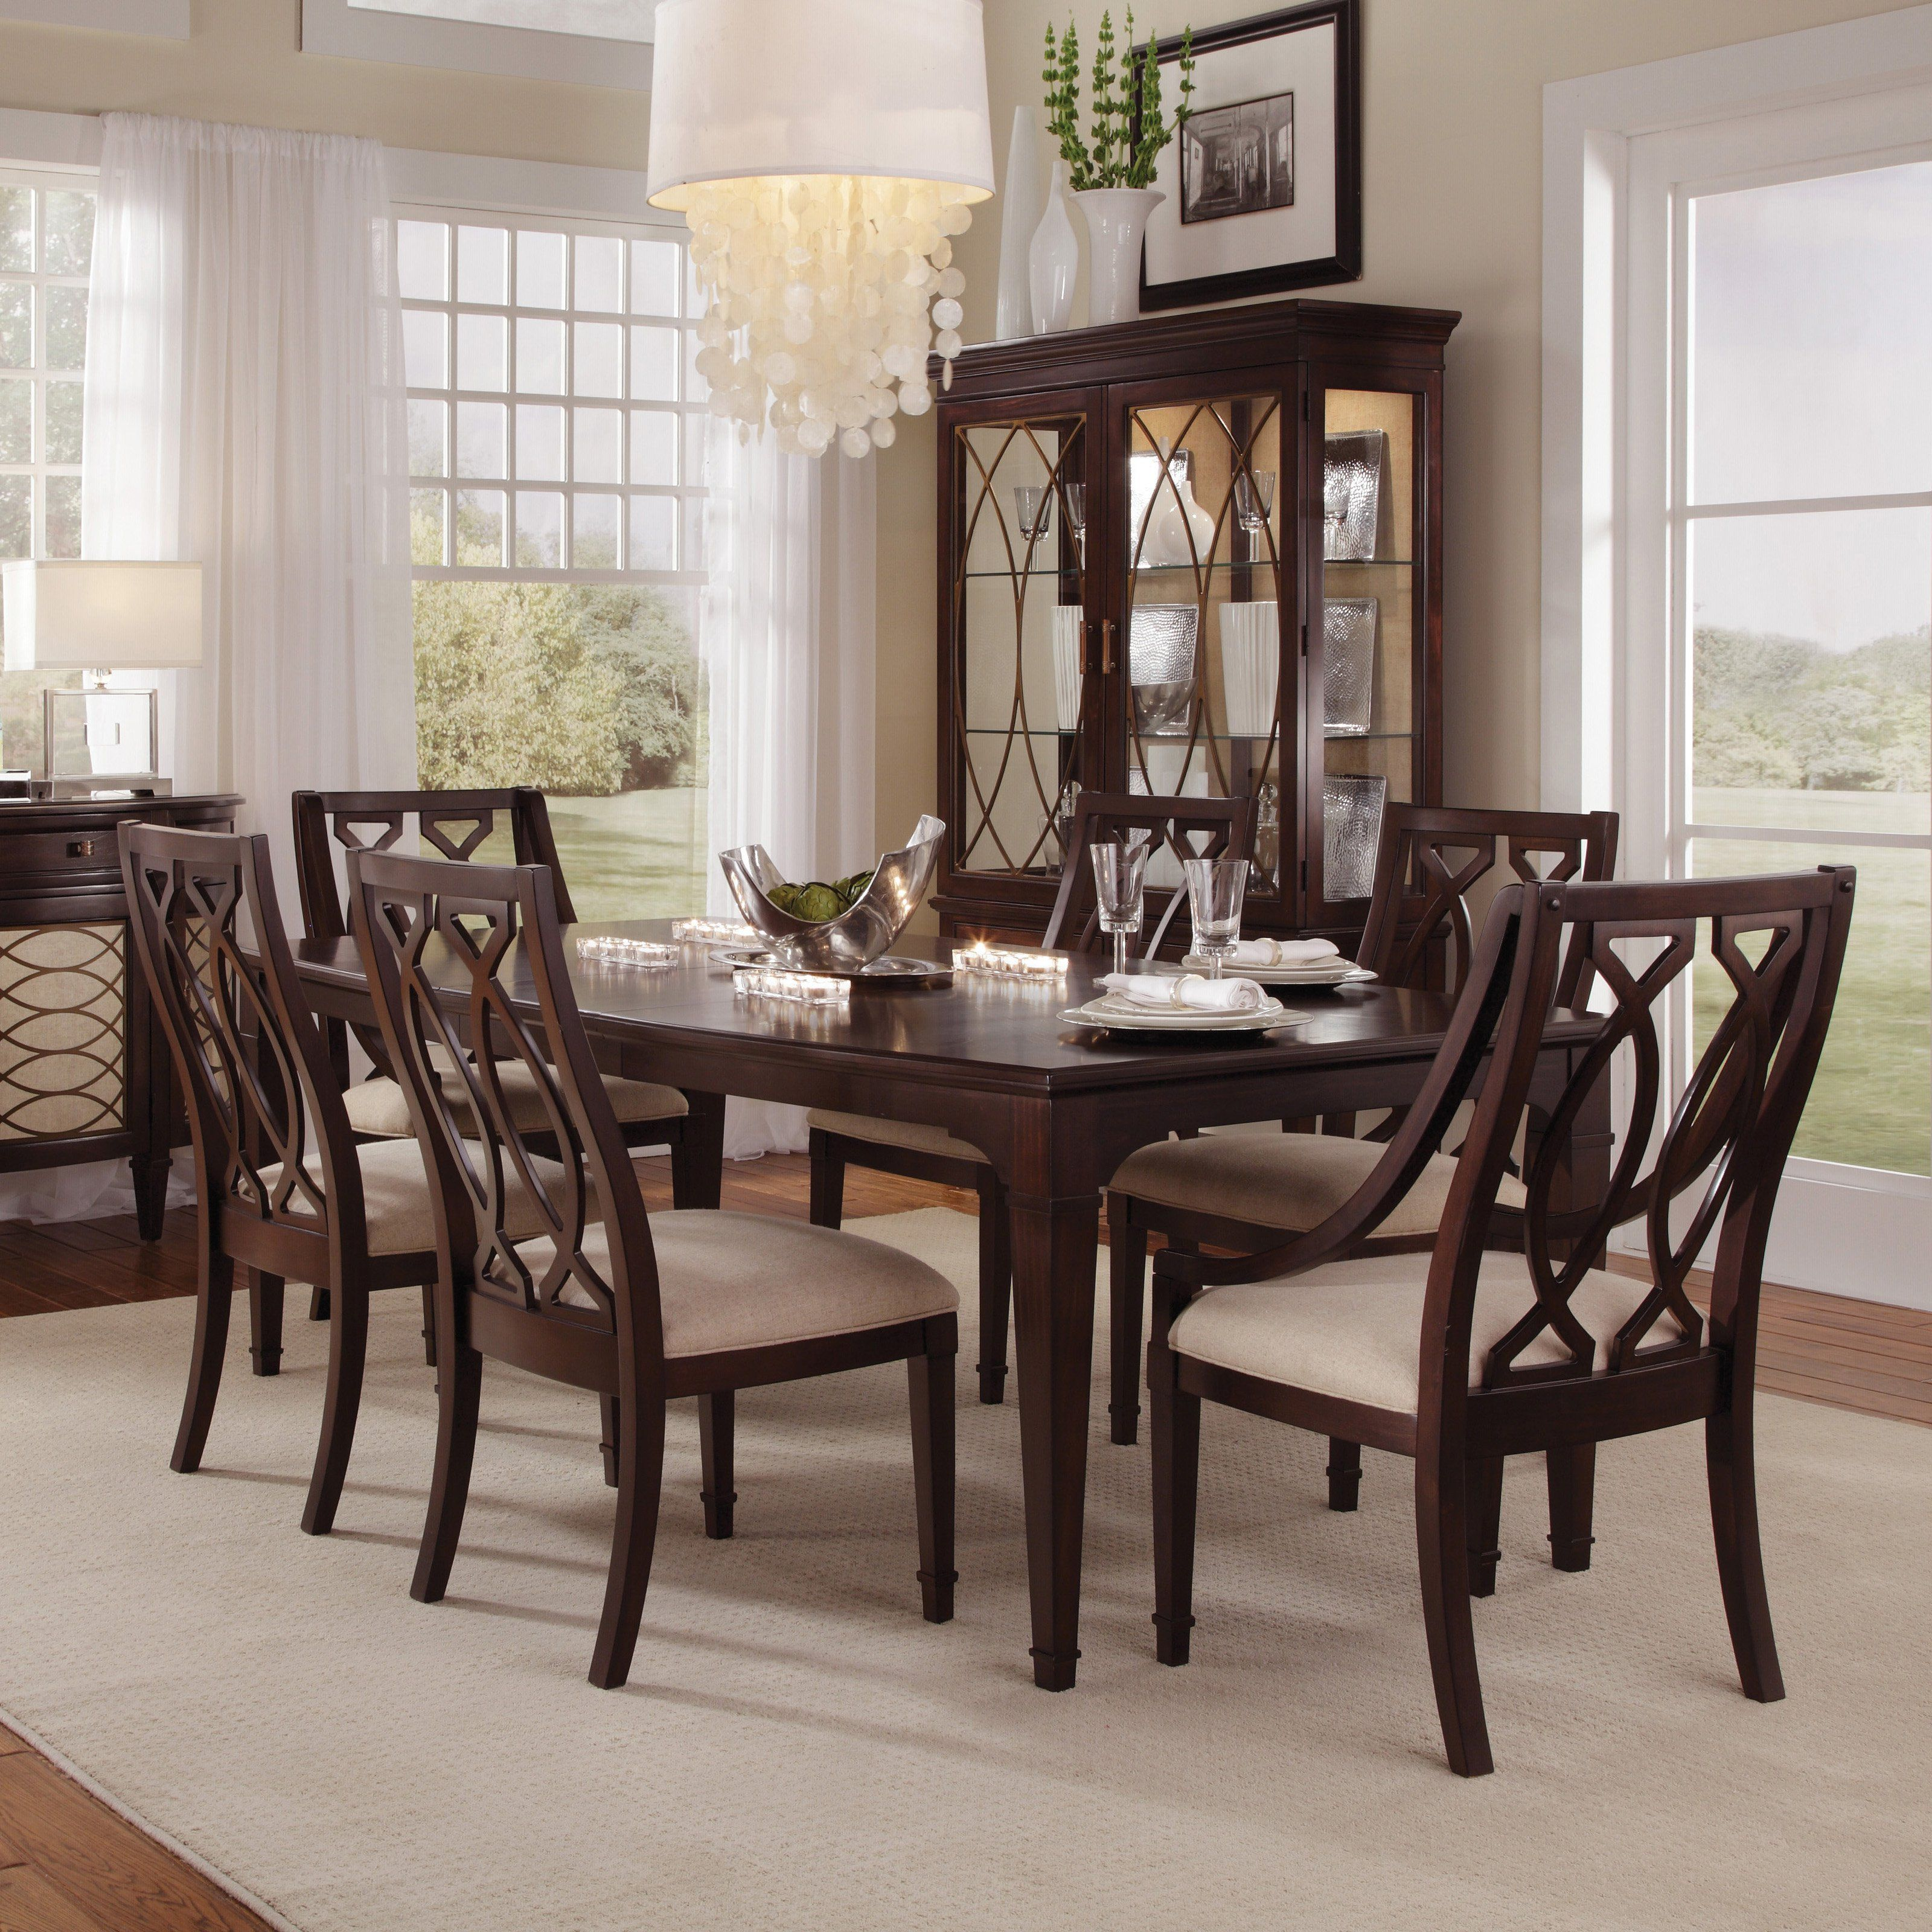 A R T Furniture Intrigue 7 Piece Rectangle Dining Set With Wood